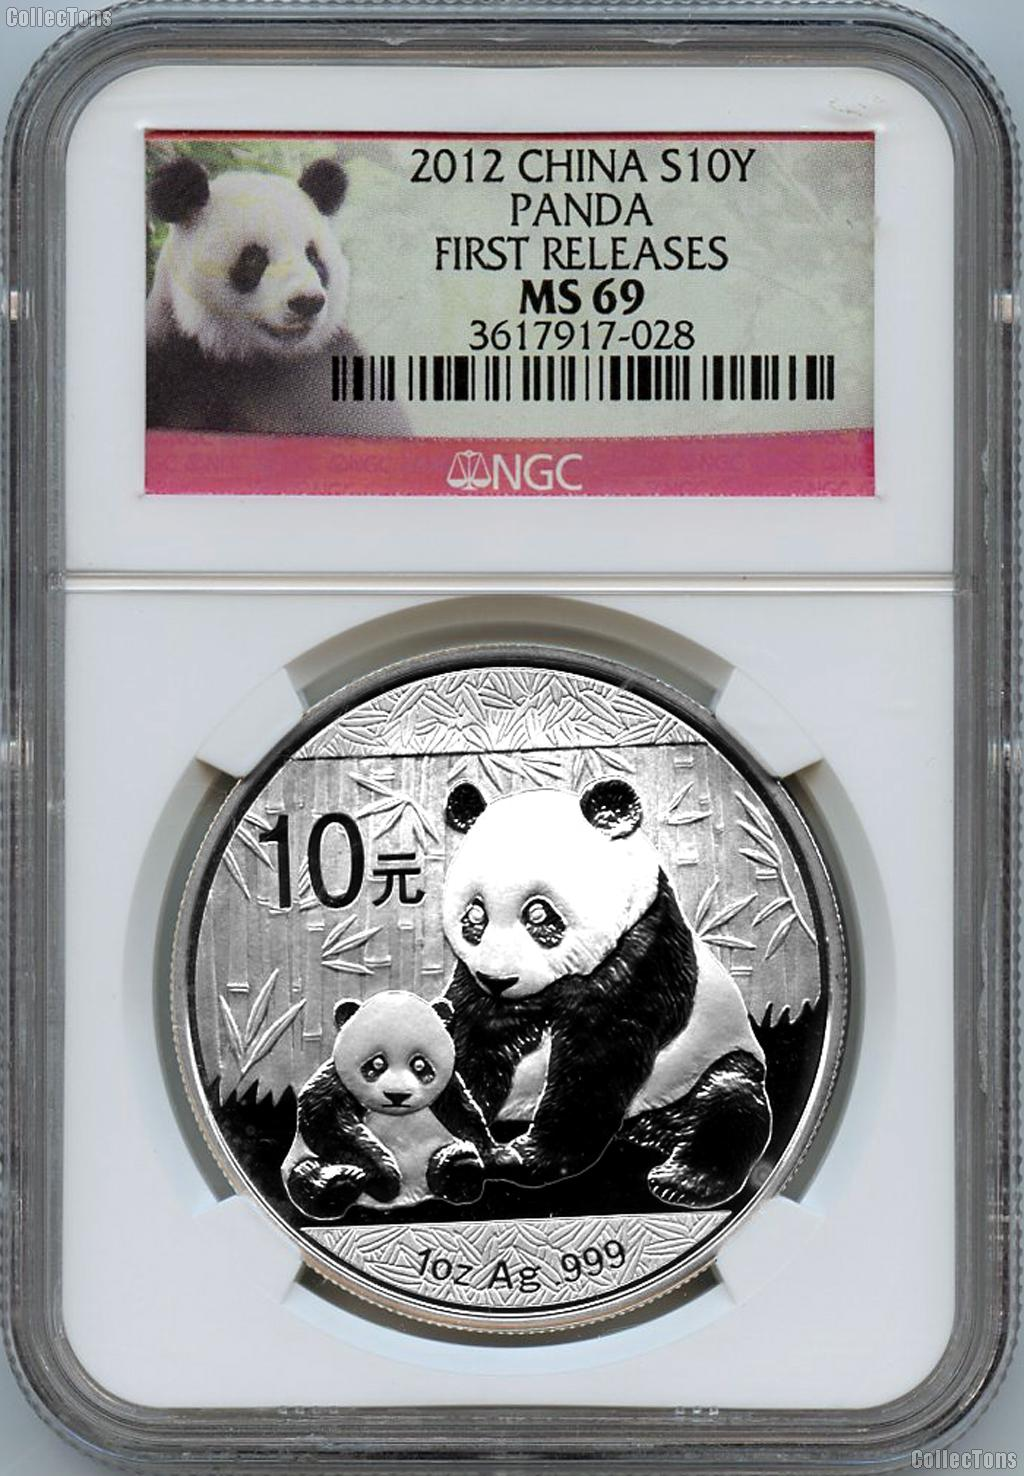 2012 Chinese Silver Panda in NGC MS 69 First Releases